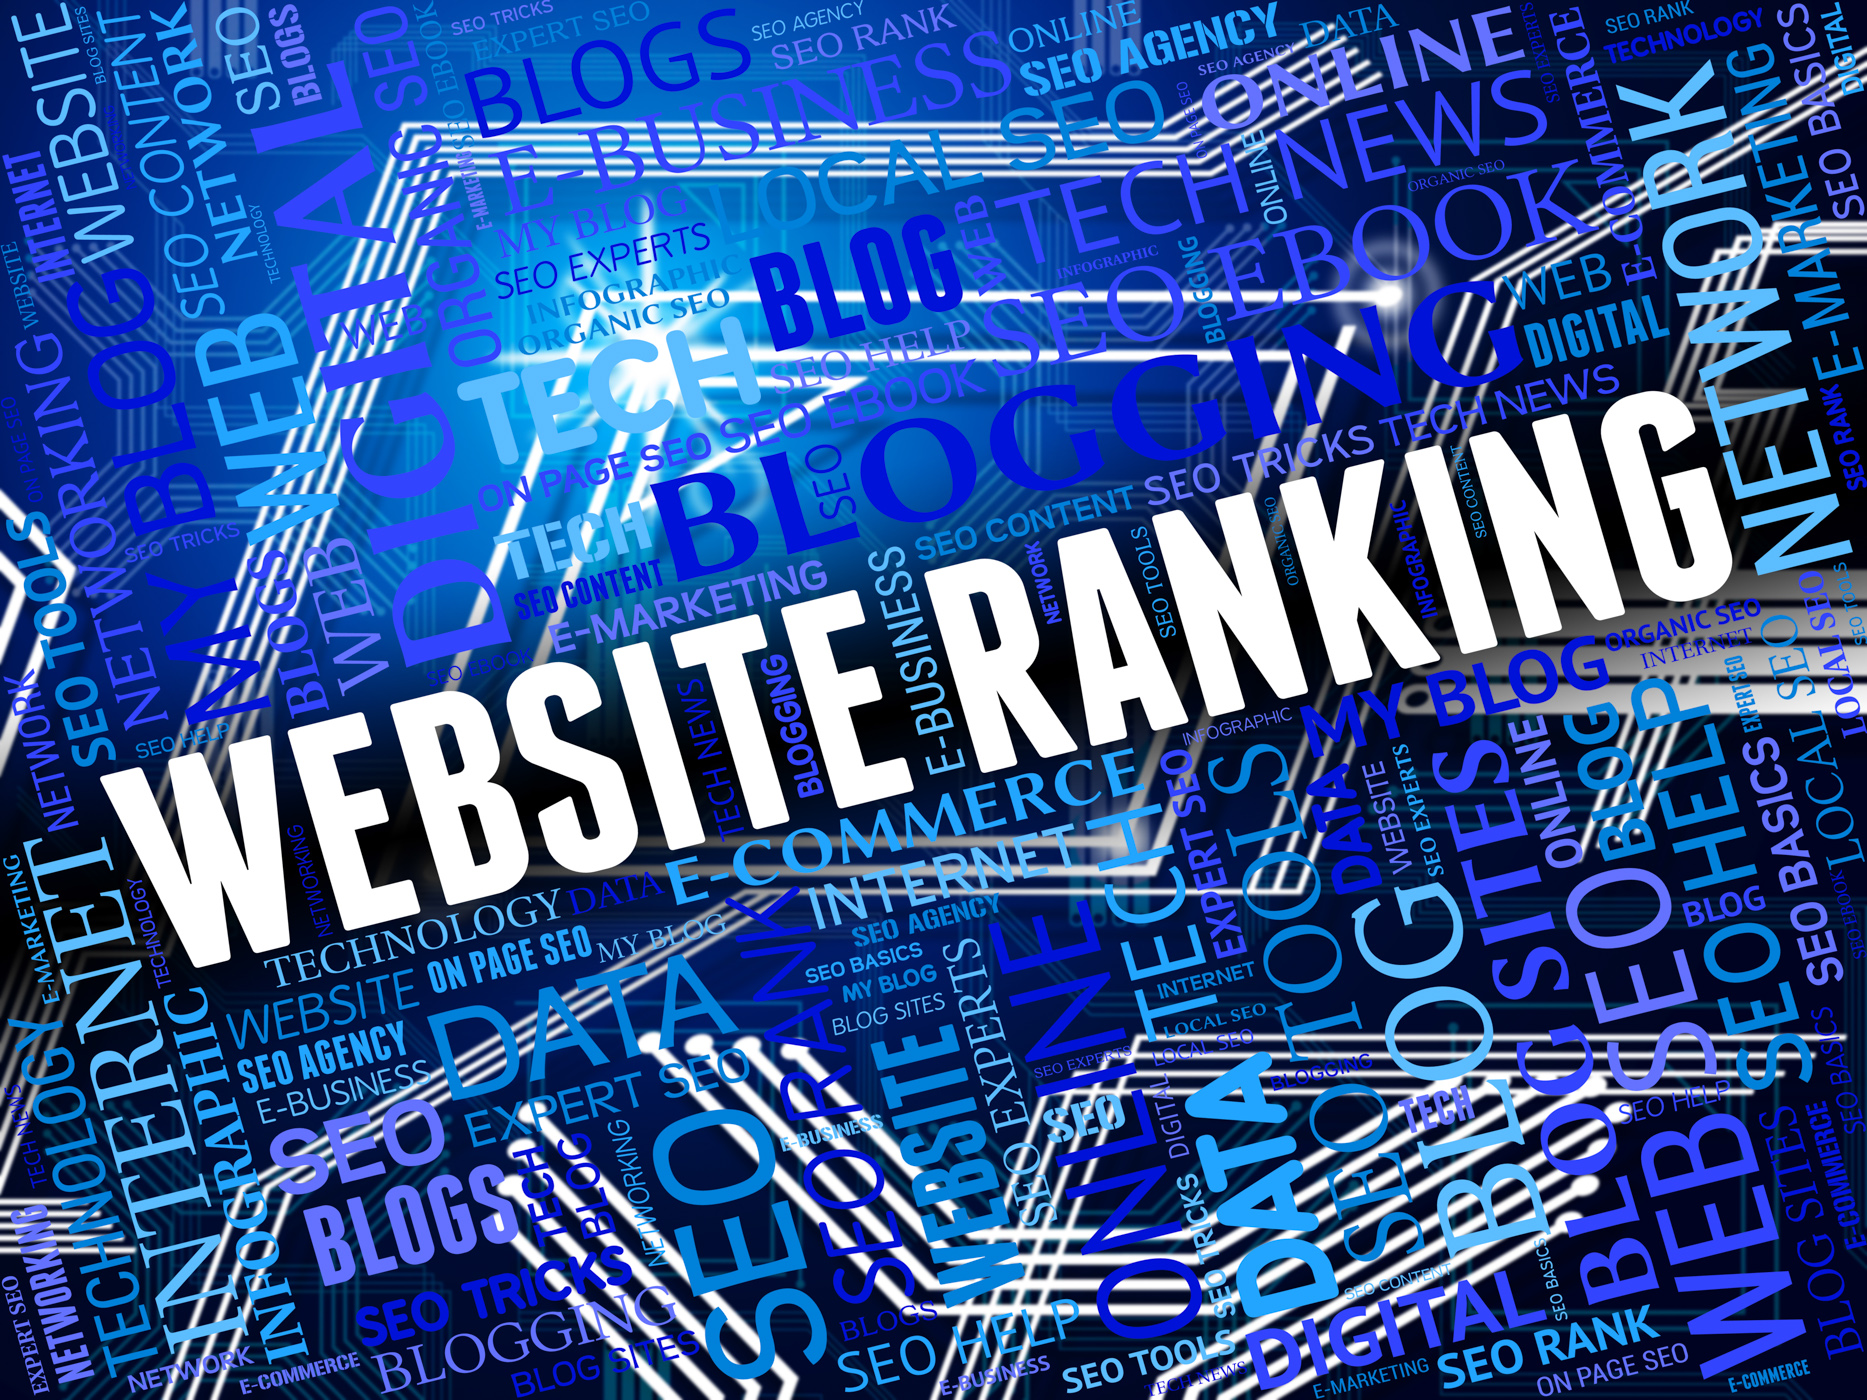 Website ranking shows marketing optimization and online photo